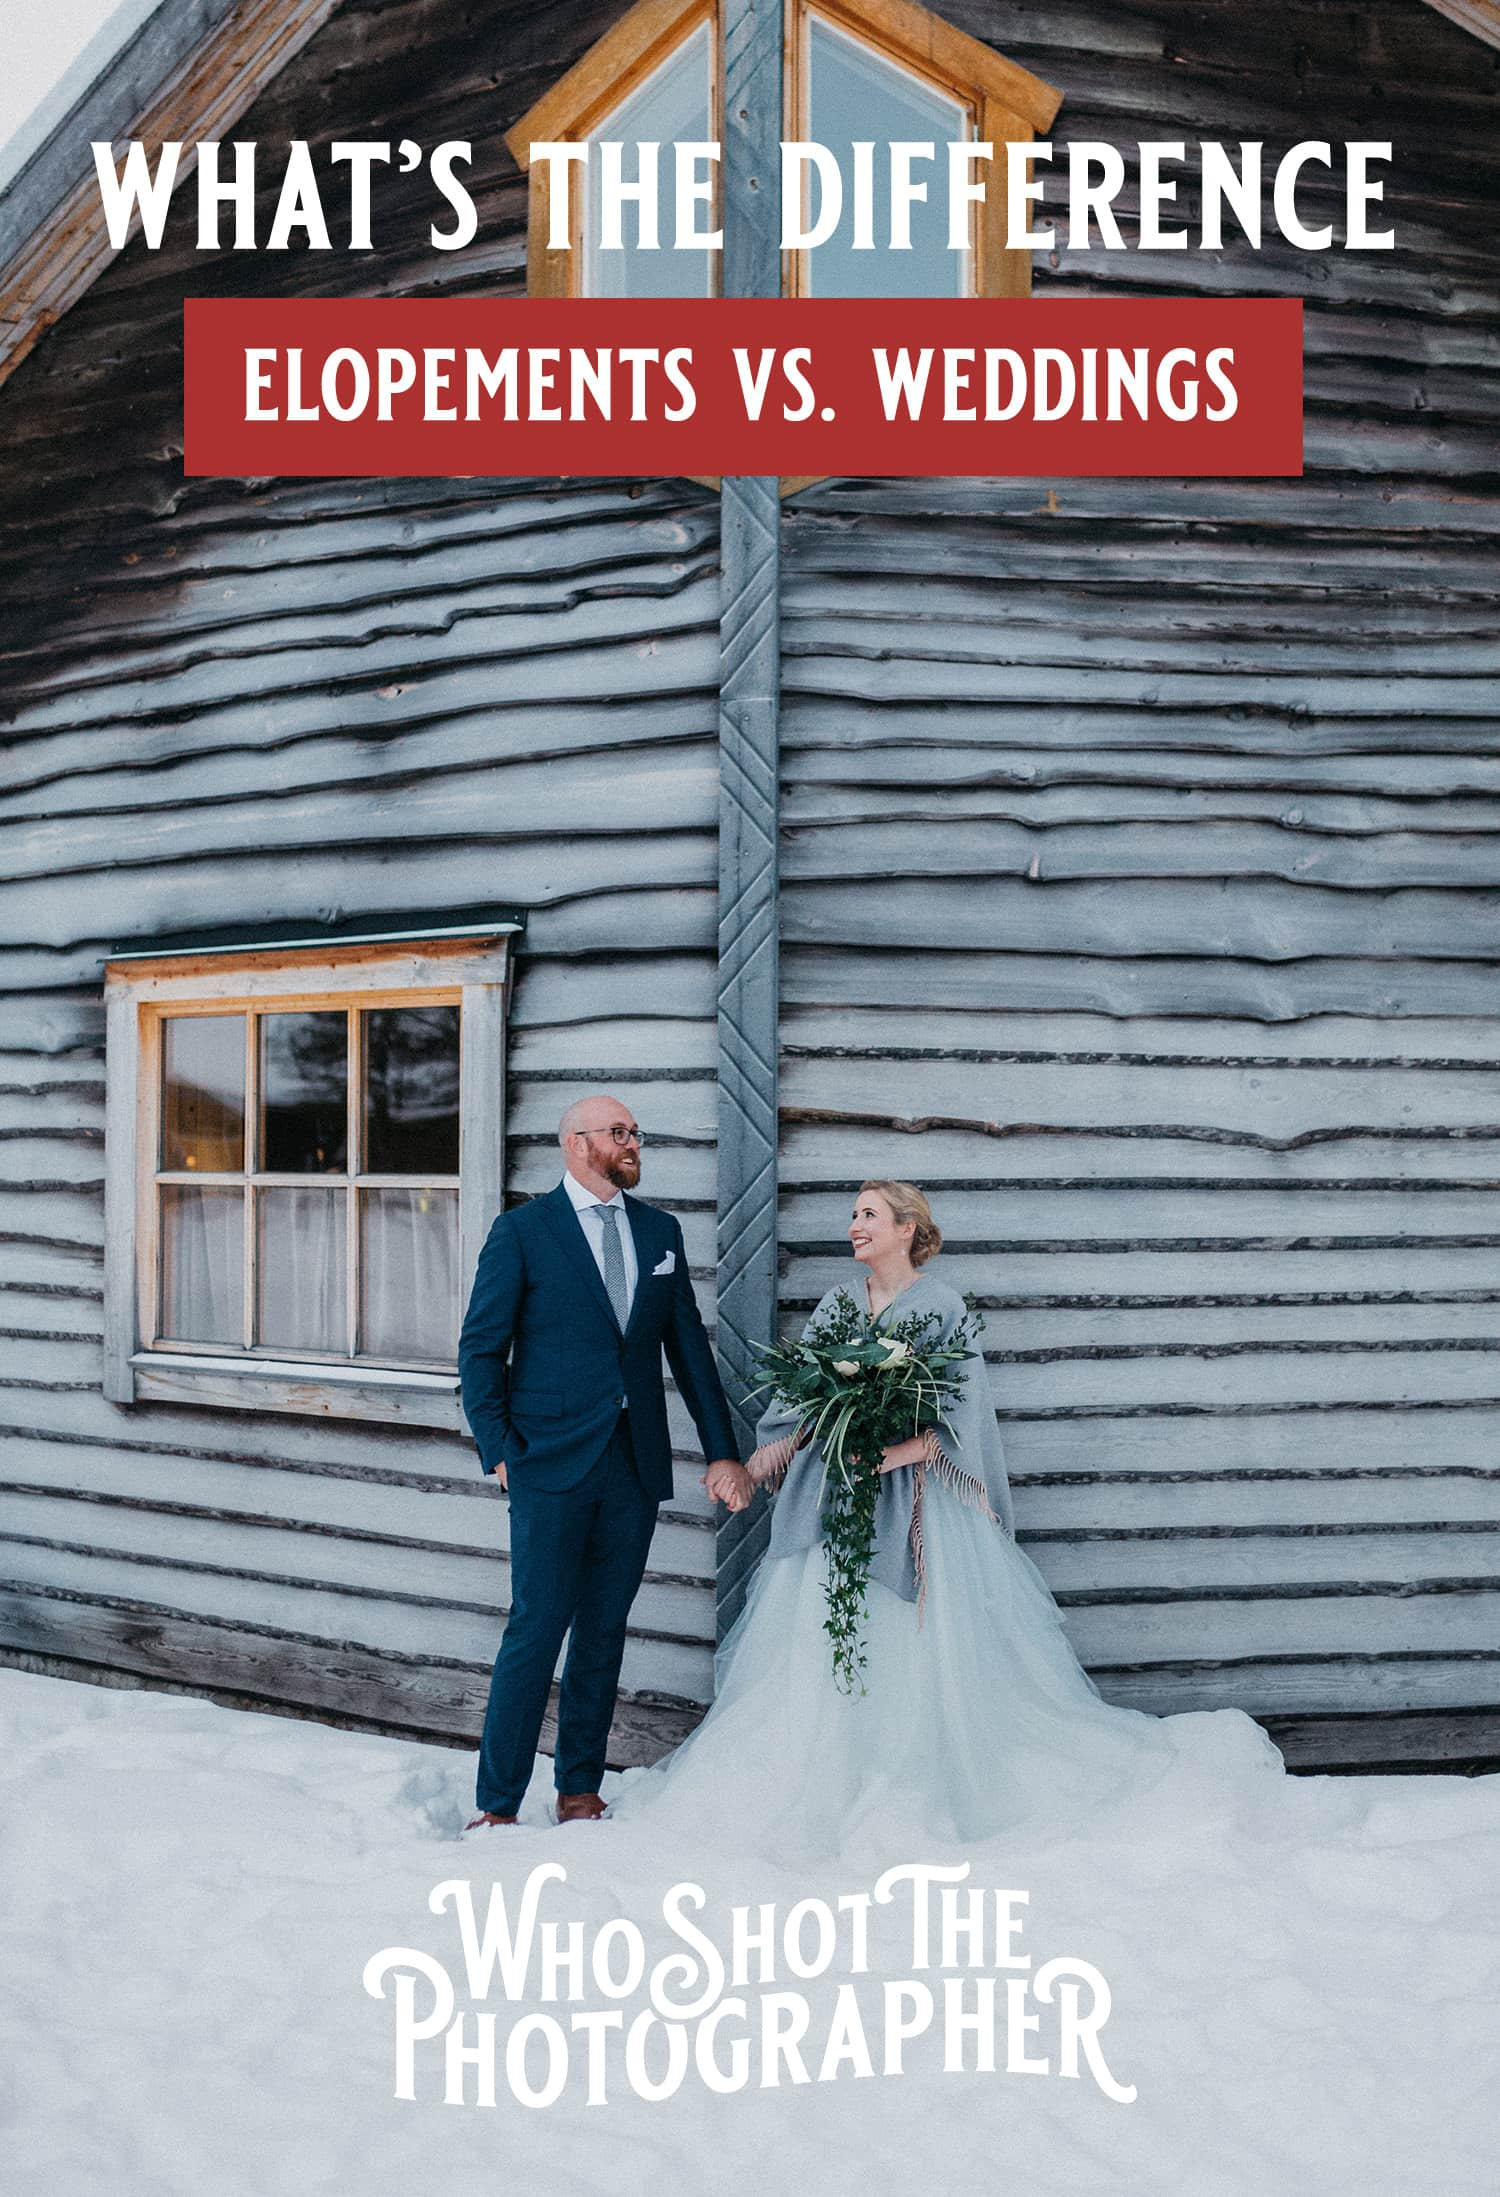 What is an elopement, Elopements vs. Weddings – What's the difference?